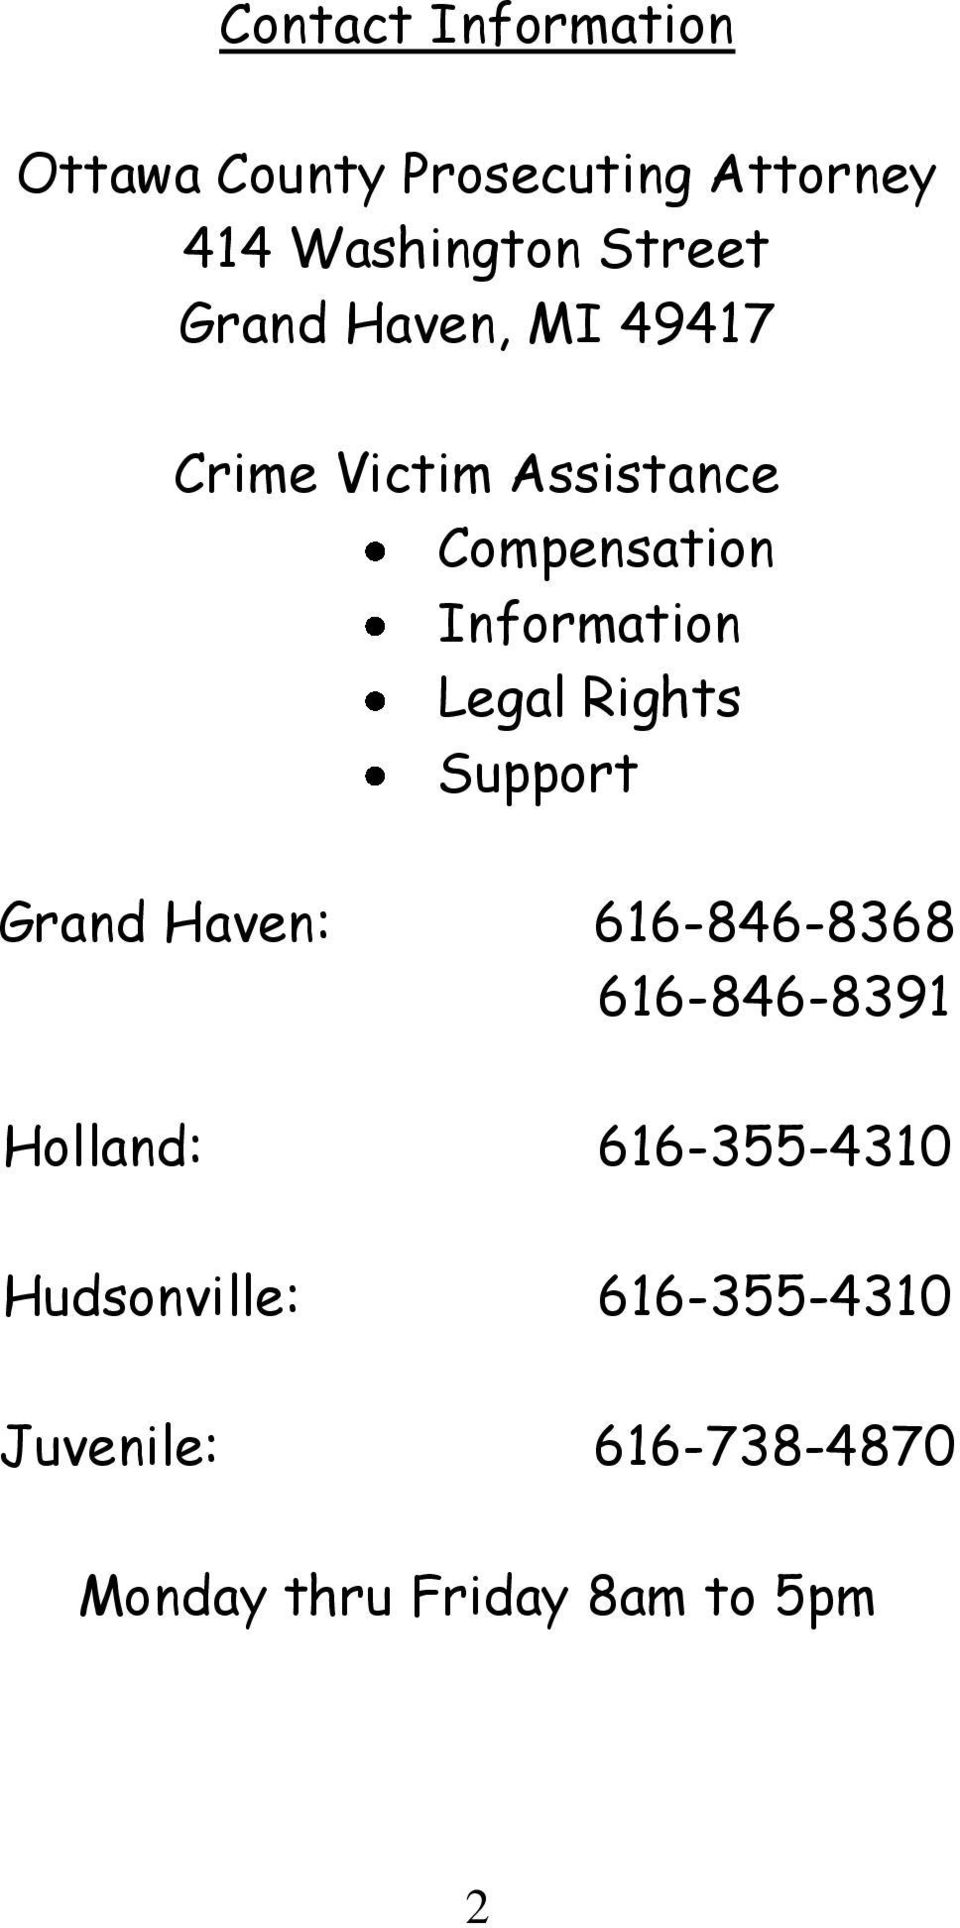 Rights Support Grand Haven: 616-846-8368 616-846-8391 Holland: 616-355-4310